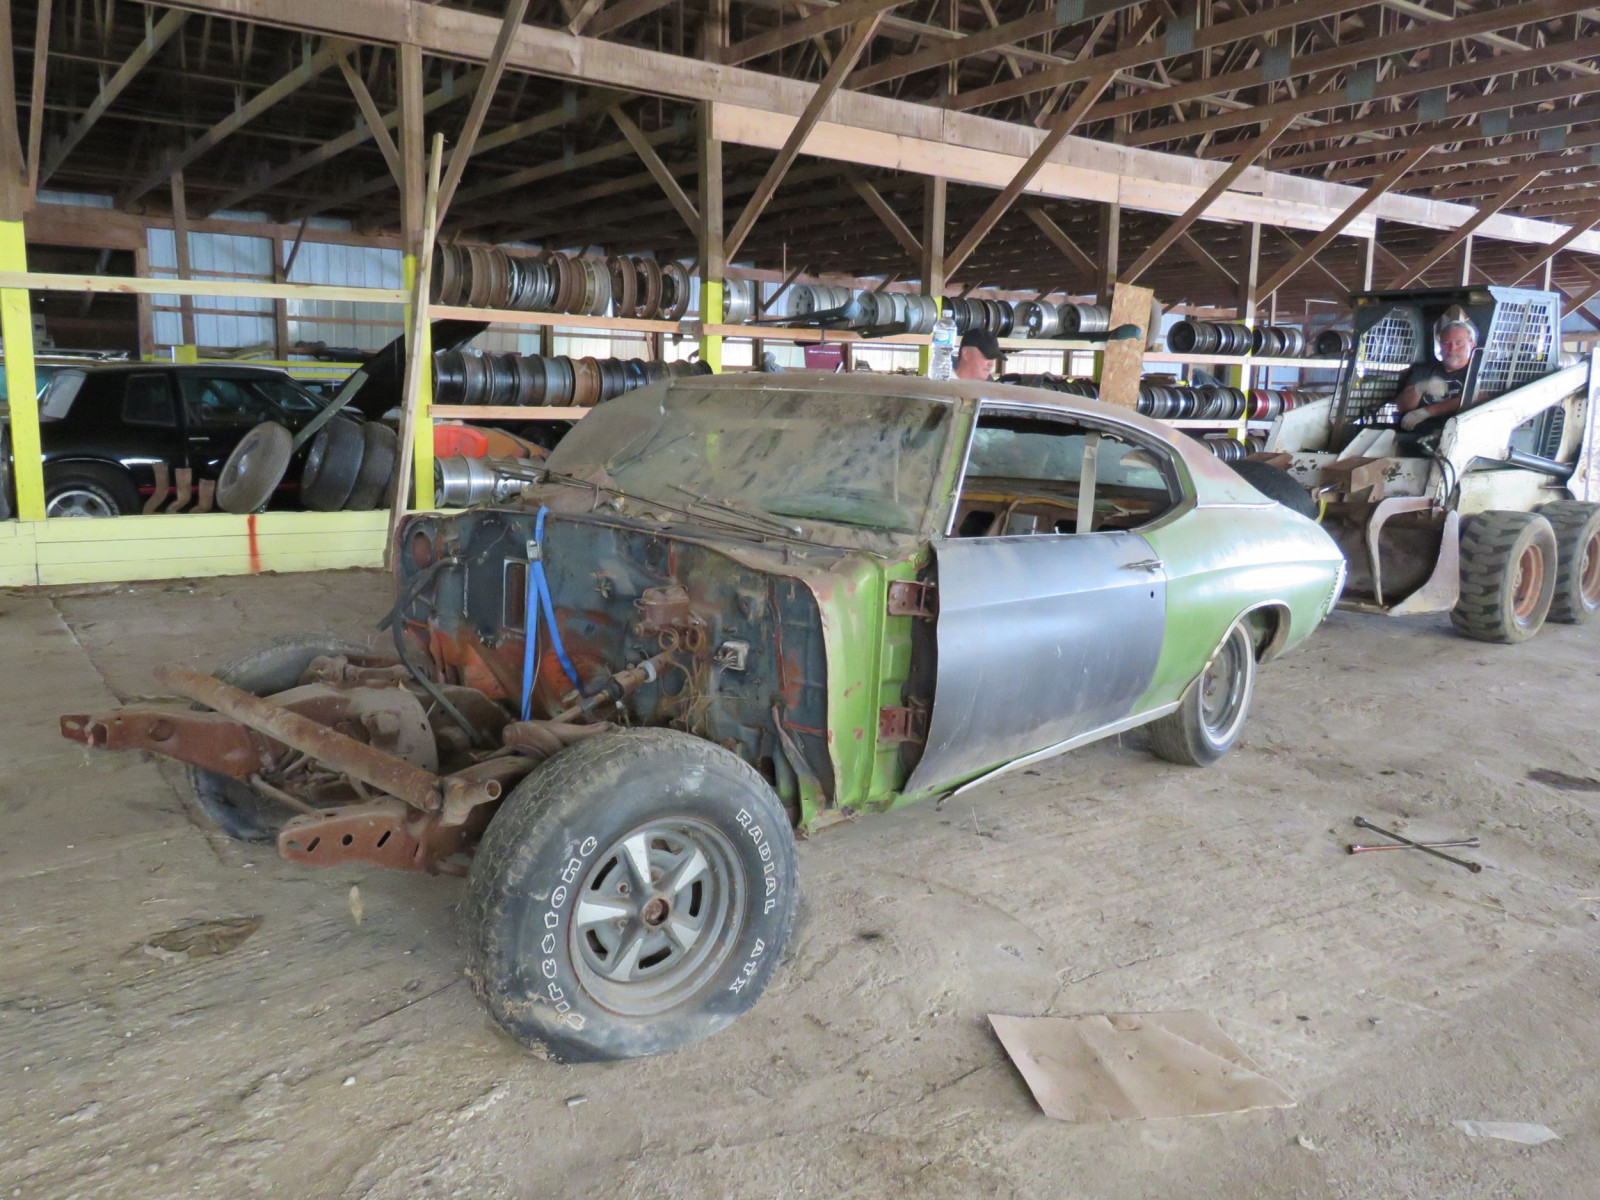 1971 Chevrolet Chevelle Rolling Body for Project - Image 1